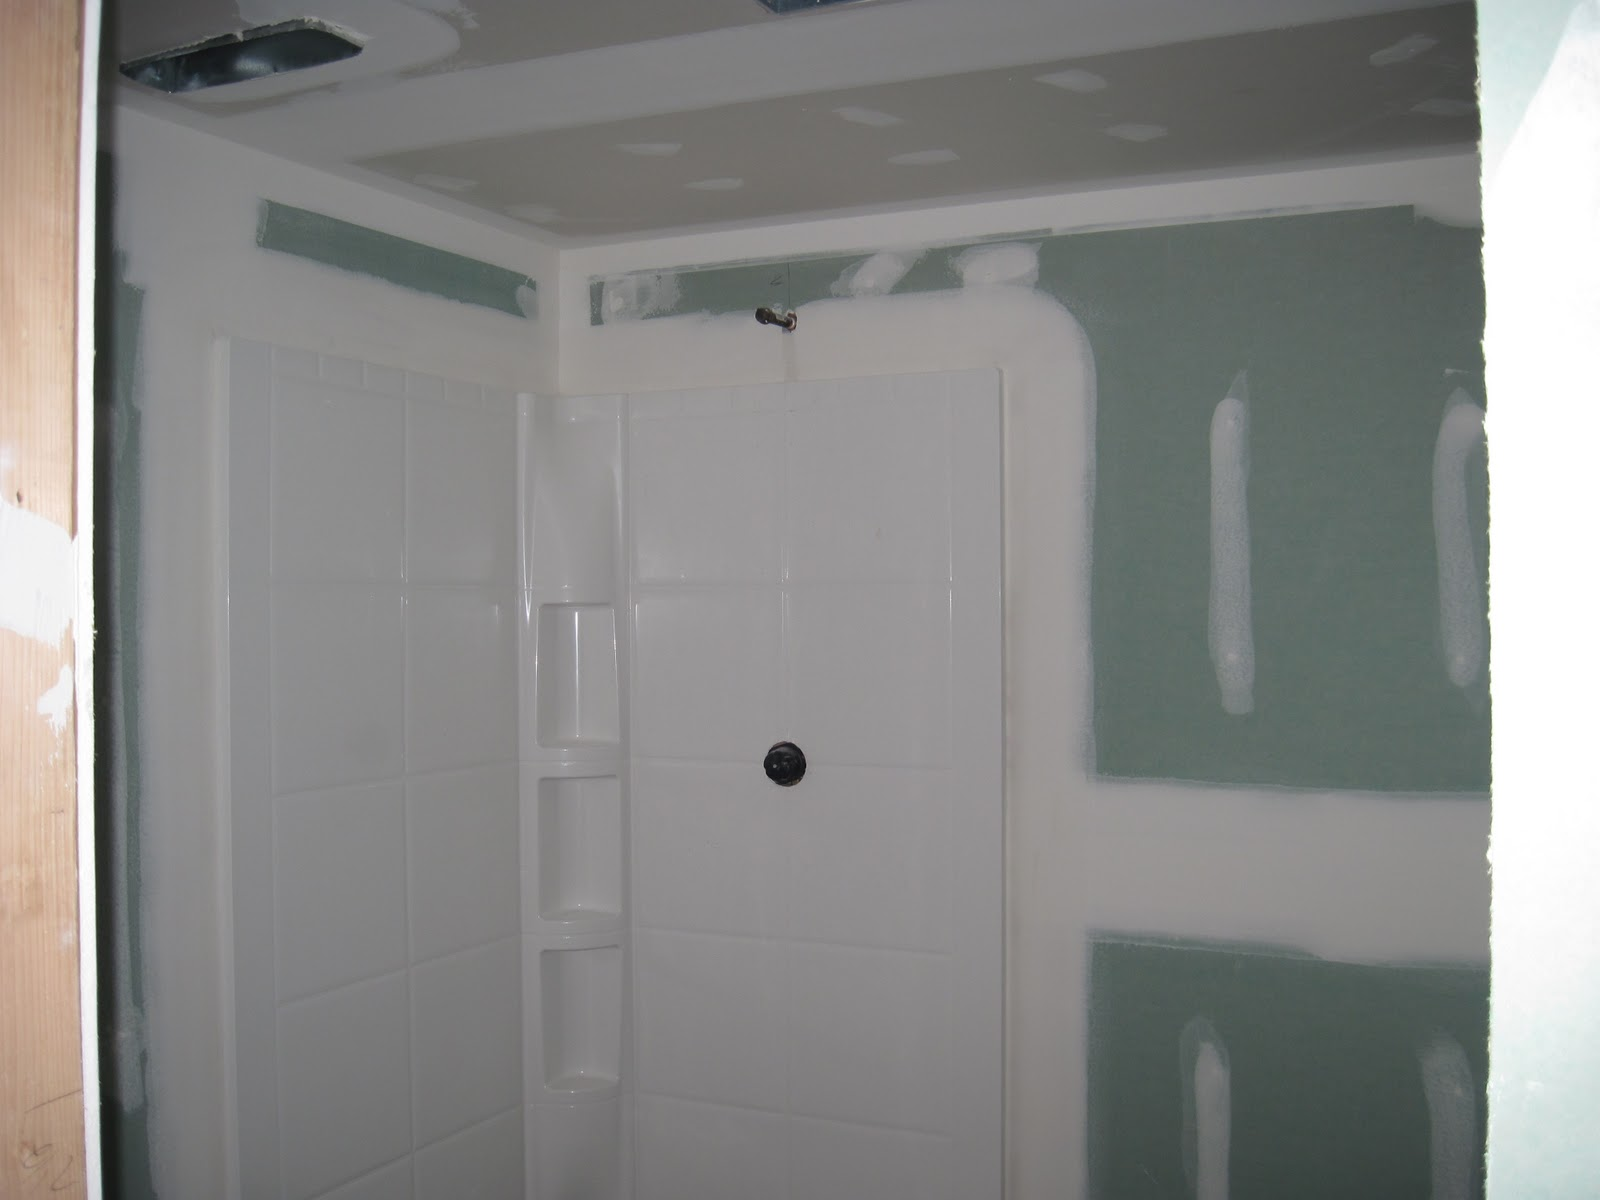 Knock Down Ceiling Texture Basement Drywall Finishing With Knockdown Ceiling Texture